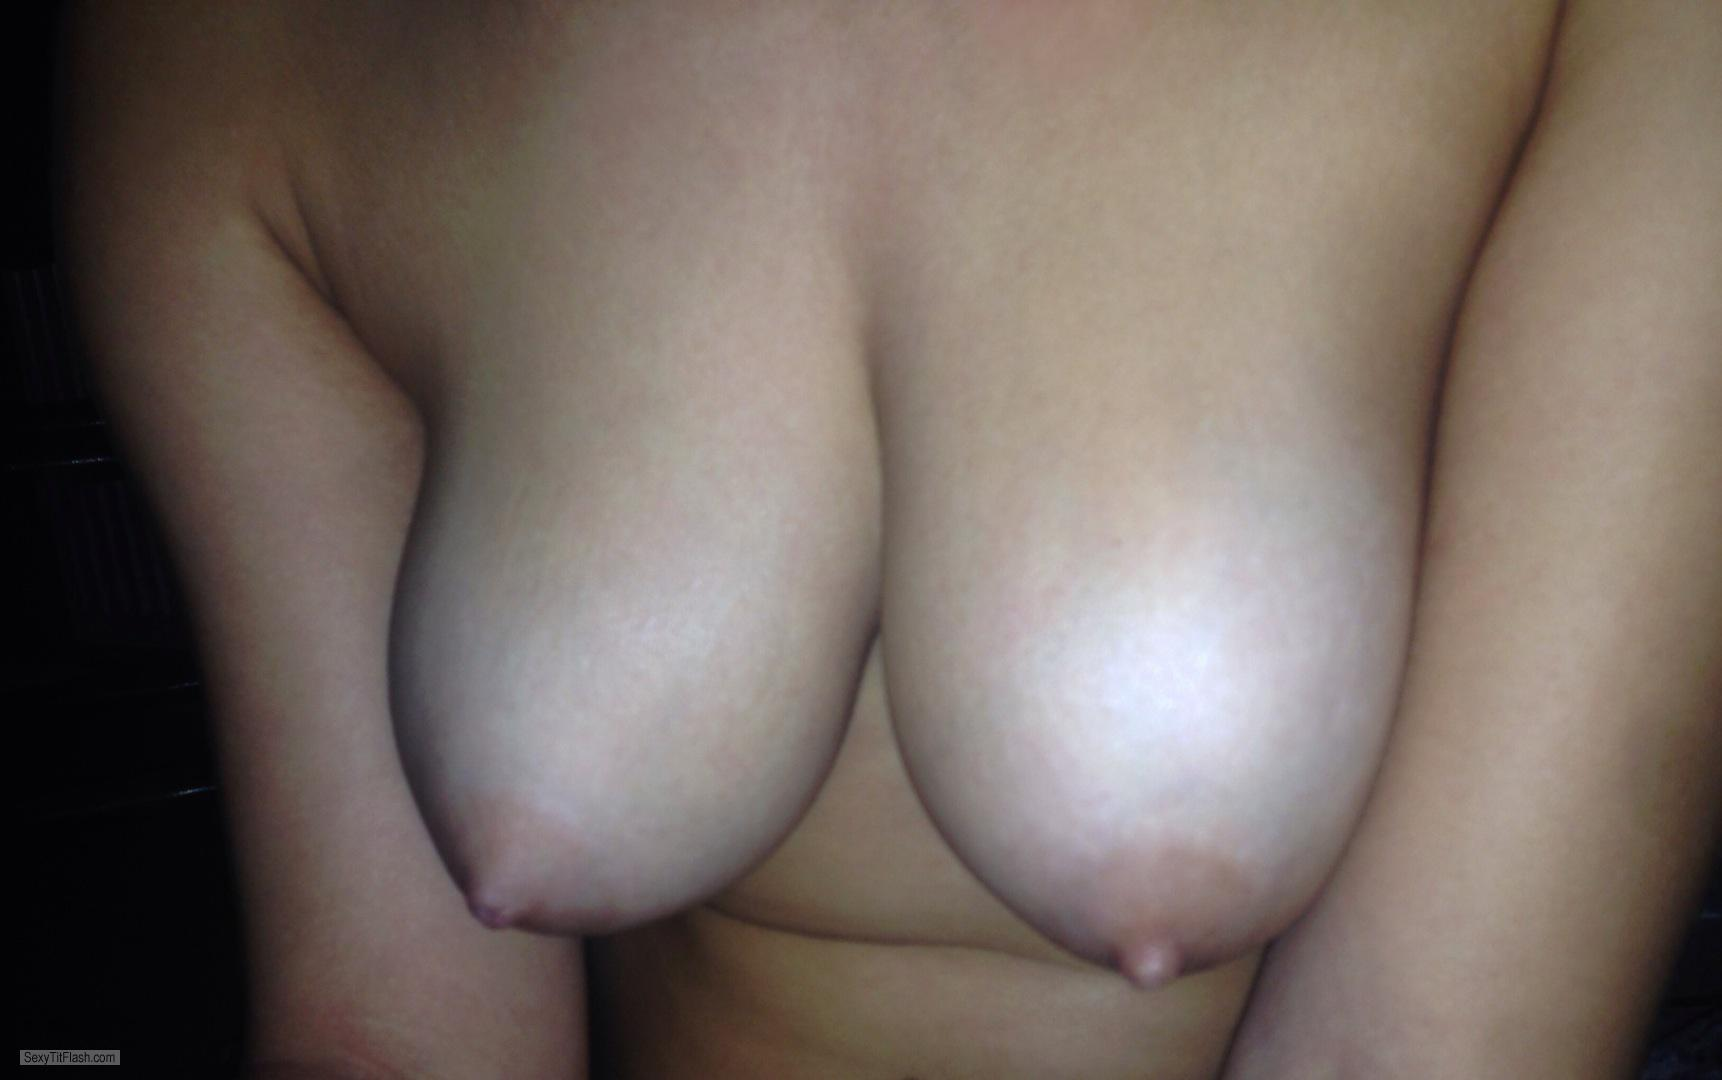 Tit Flash: My Big Tits (Selfie) - Naomi from United Kingdom